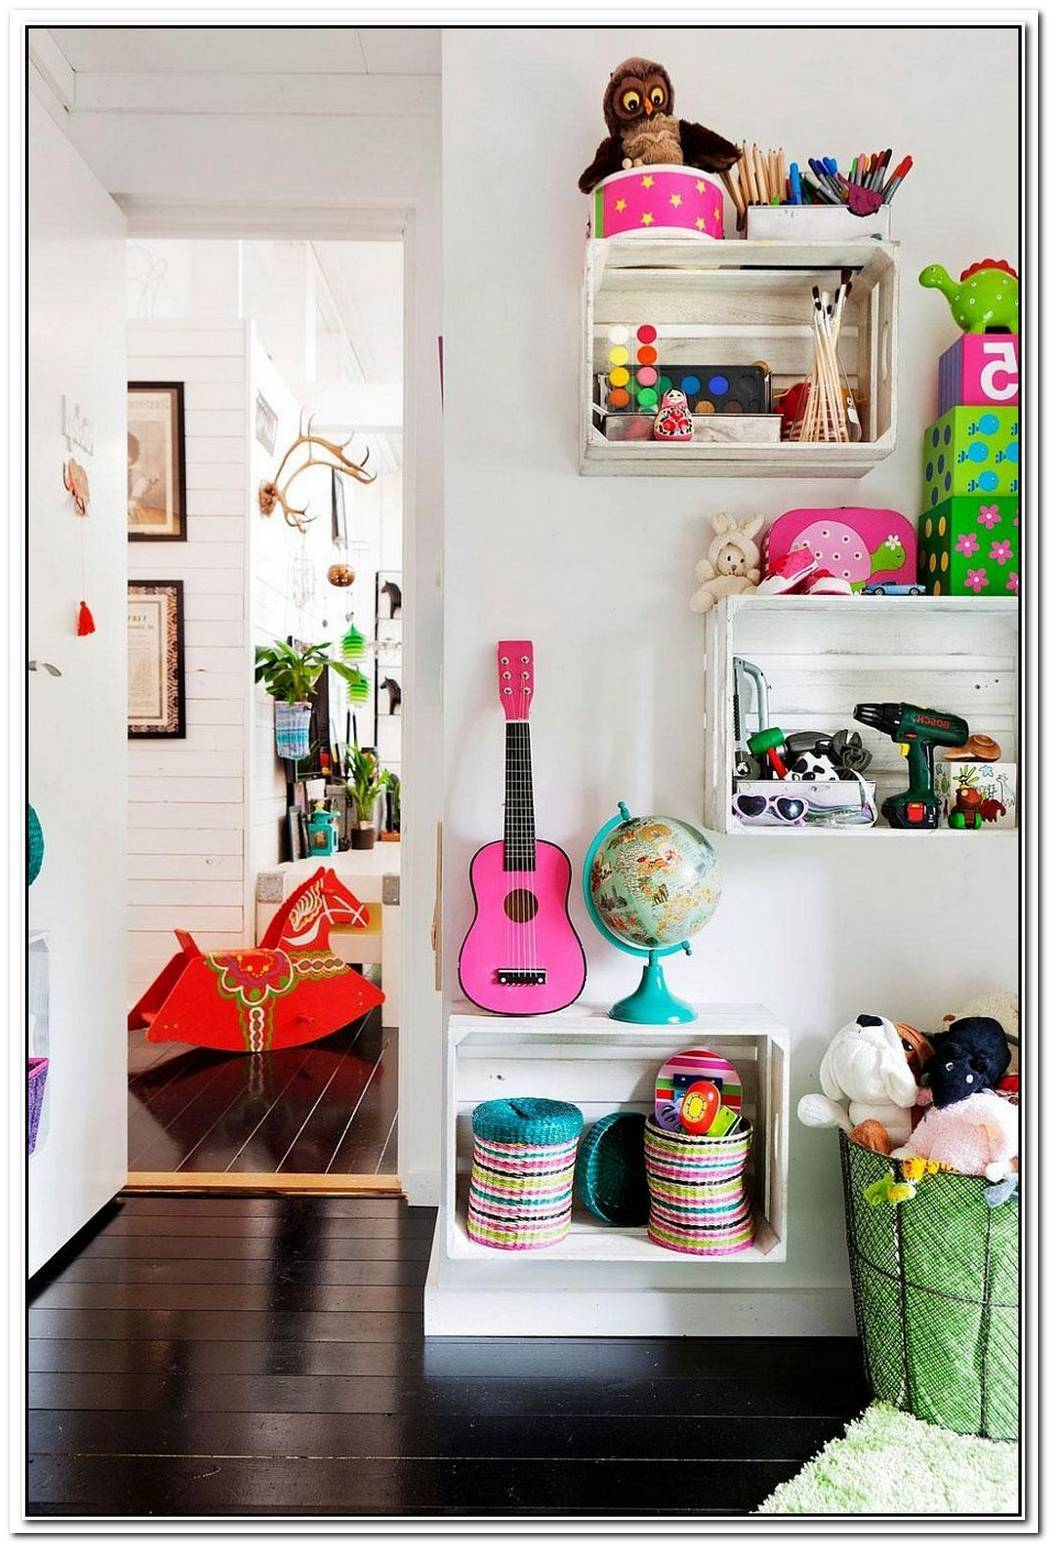 11 SpaceSaving DIY Kids' Room Storage Ideas That Help Declutter